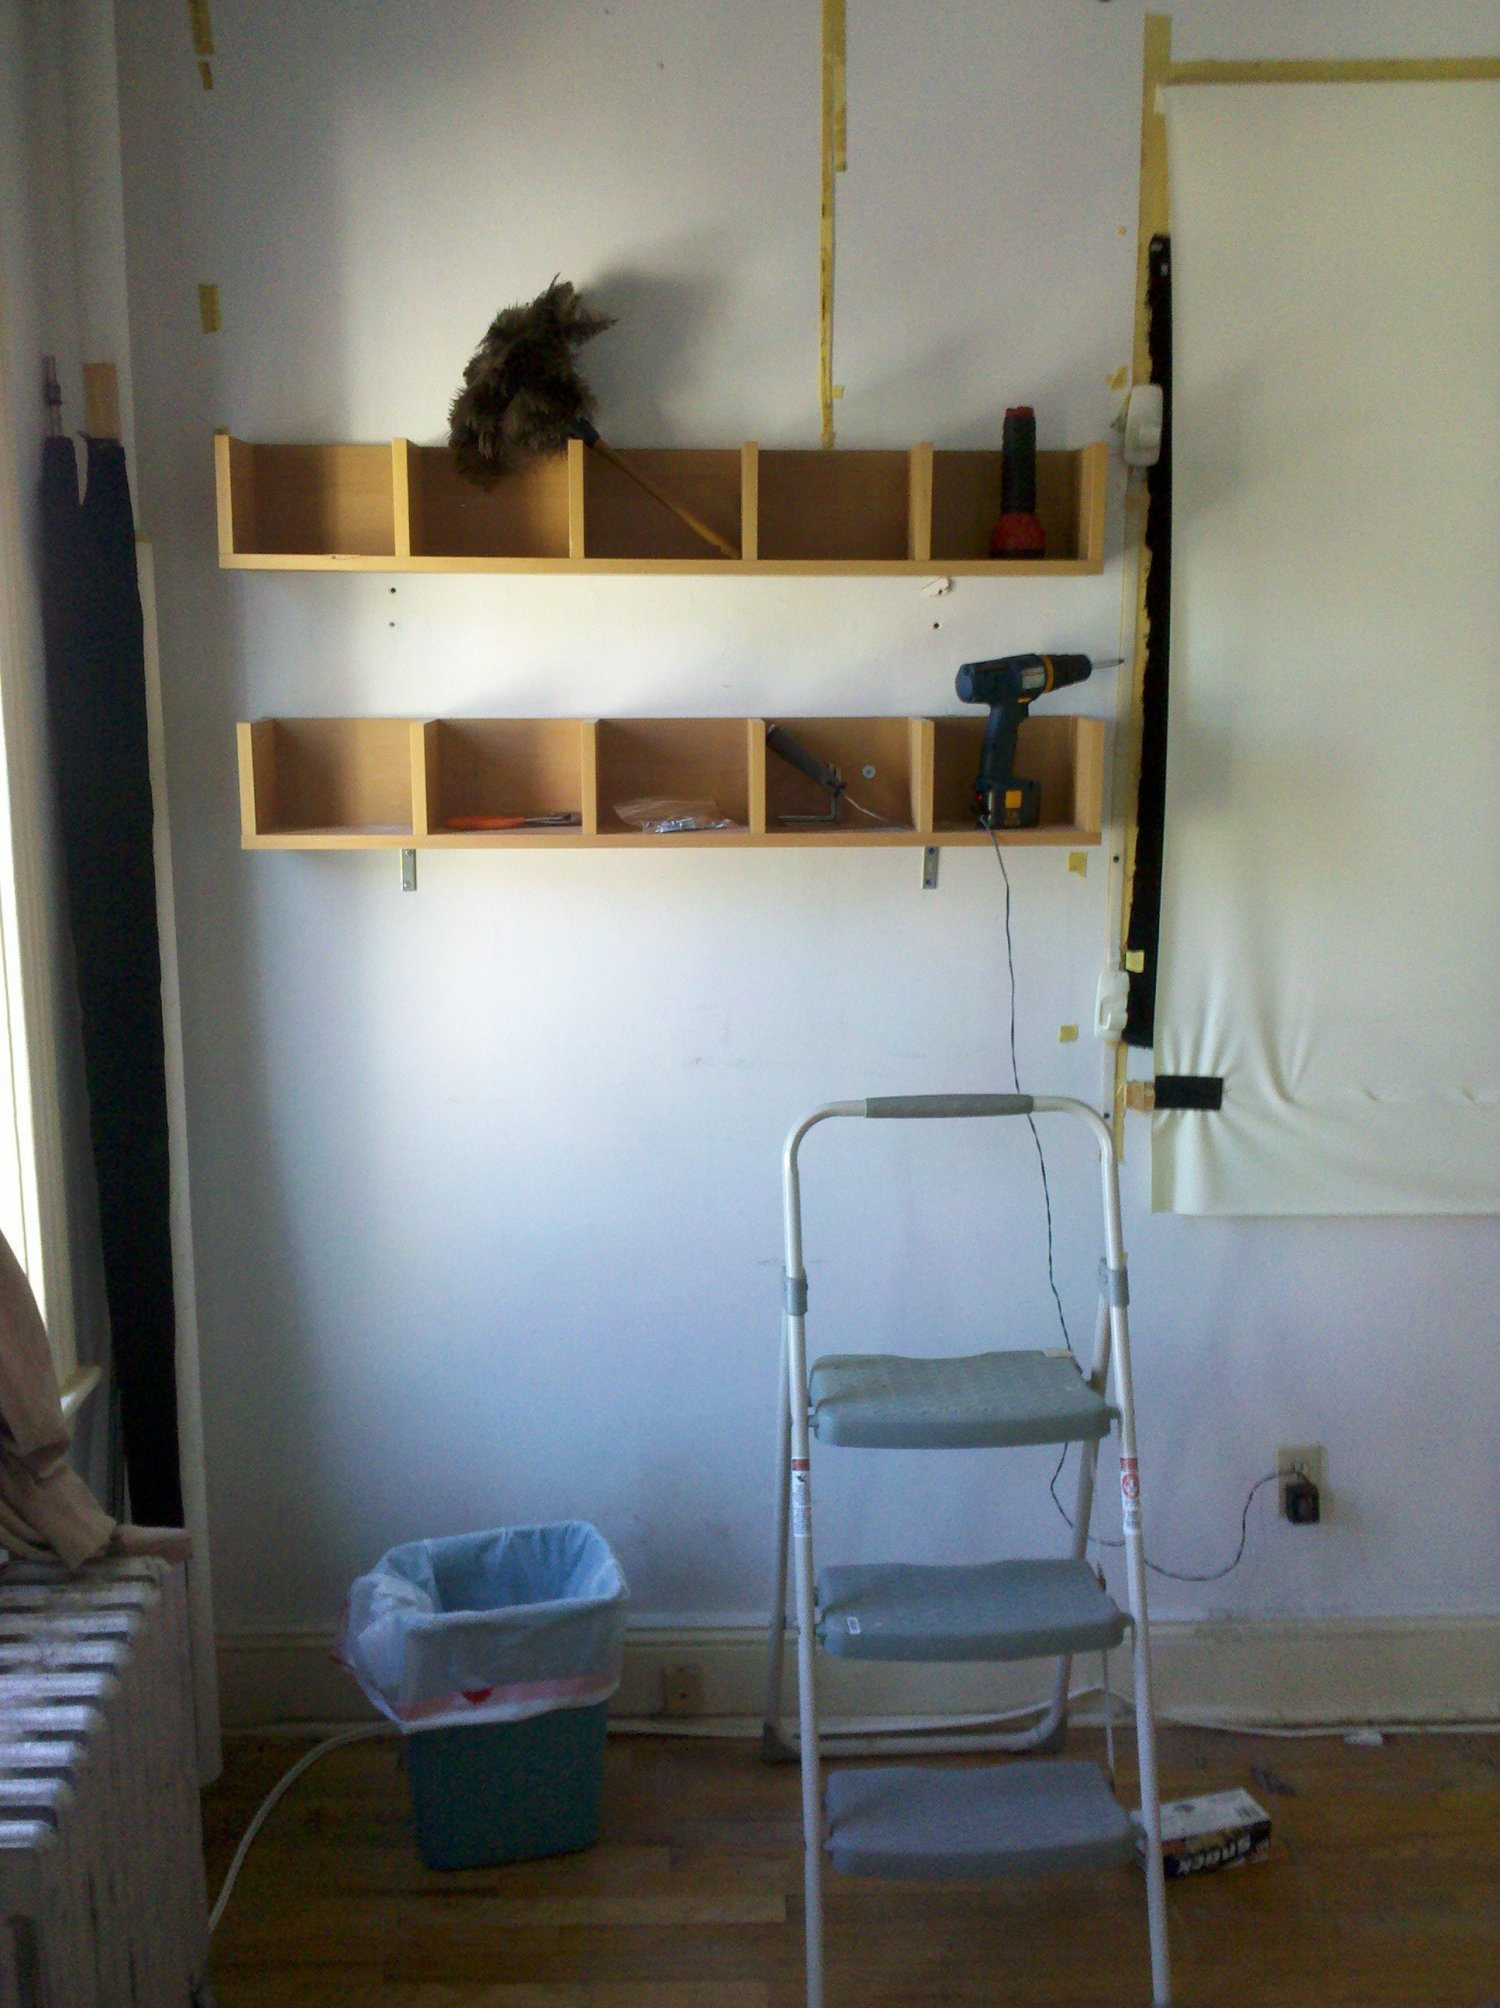 Building a Home Theater, Step 5: The \